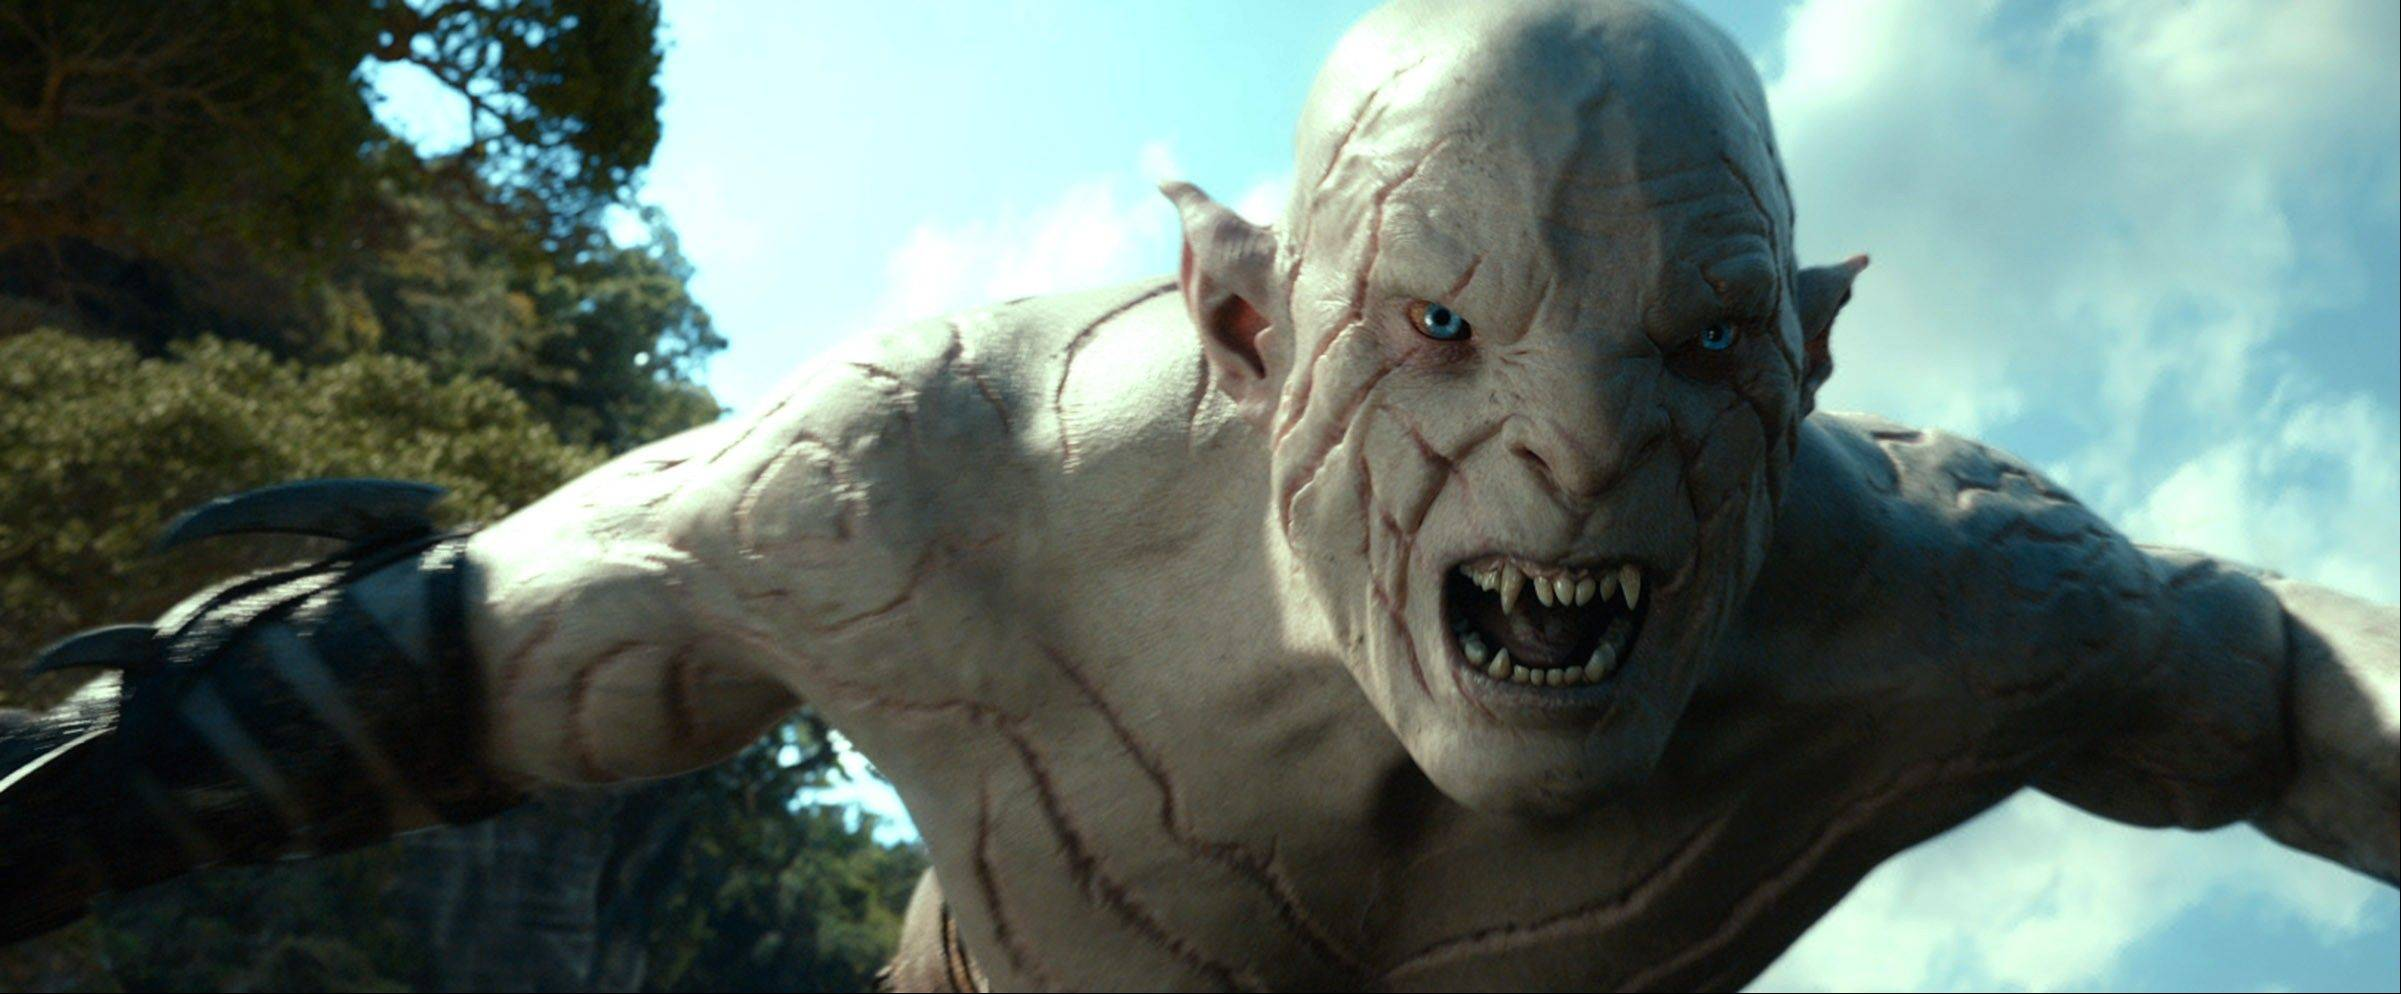 "Azog the Orc (Manu Bennett) menaces hobbits and dwarves in Peter Jackson's fifth J.R.R. Tolkien-based adventure ""The Hobbit: The Desolation of Smaug."""